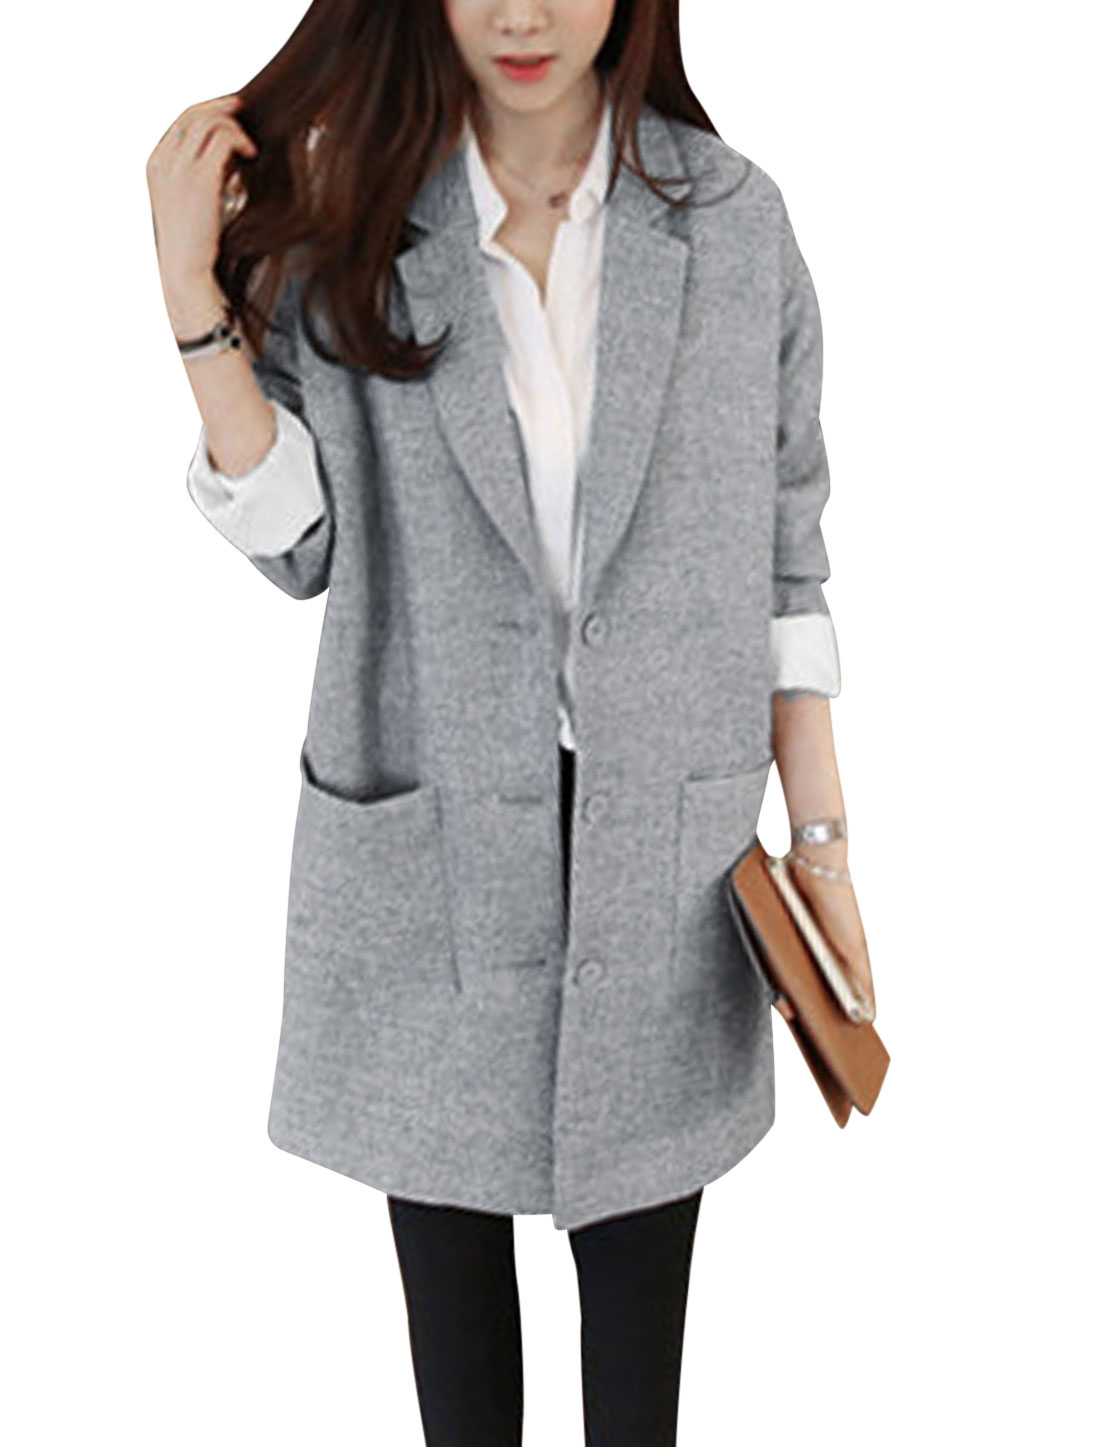 Ladies Gray Single Breasted Notched Lapel Front Pockets Long Jacket M